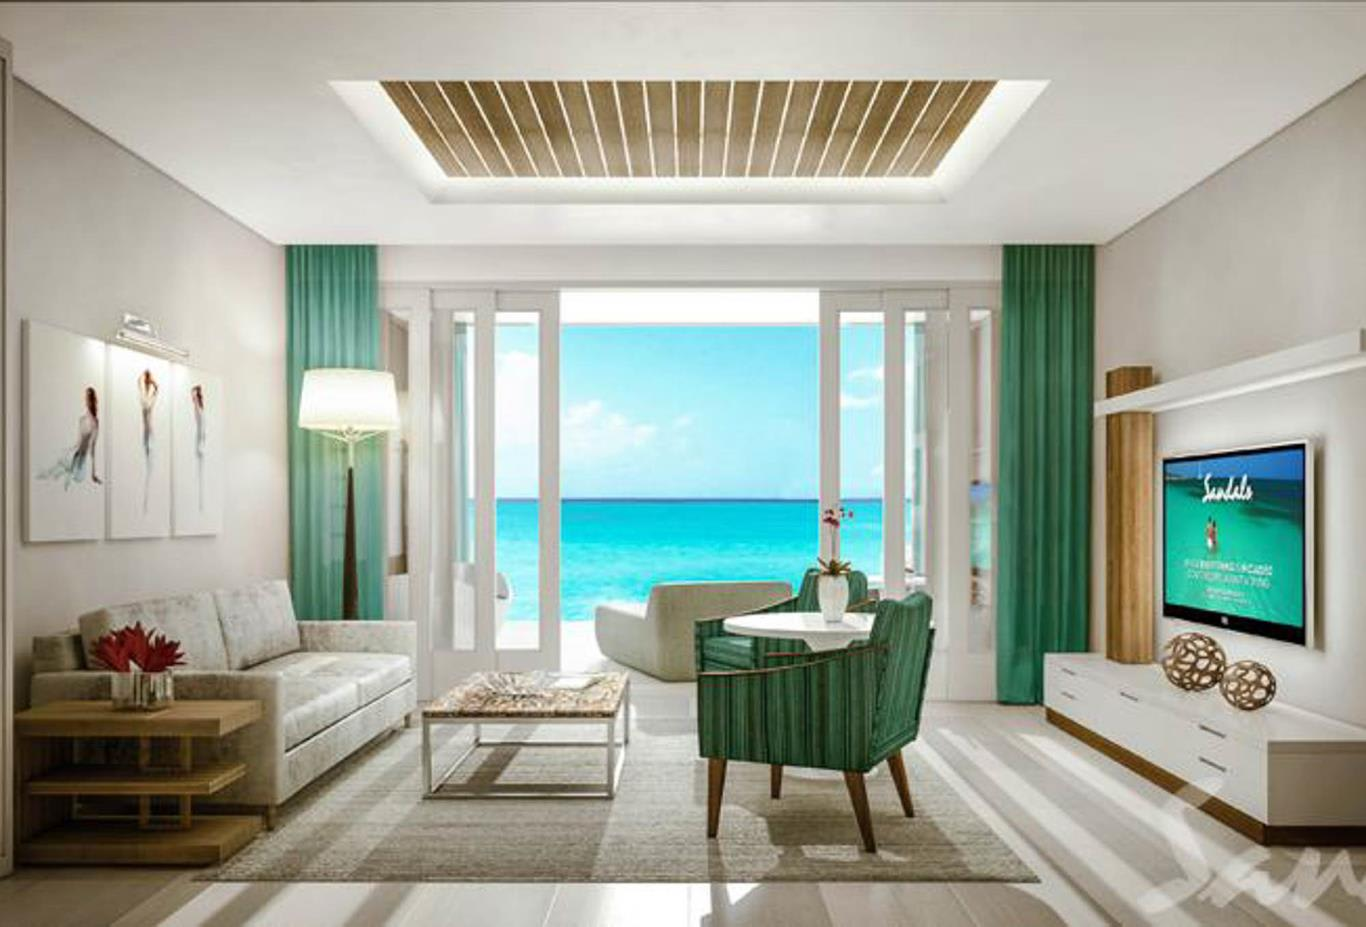 M1 - Beachfront Millionaire One Bedroom Butler Suite with Tranquillity Soaking Tub